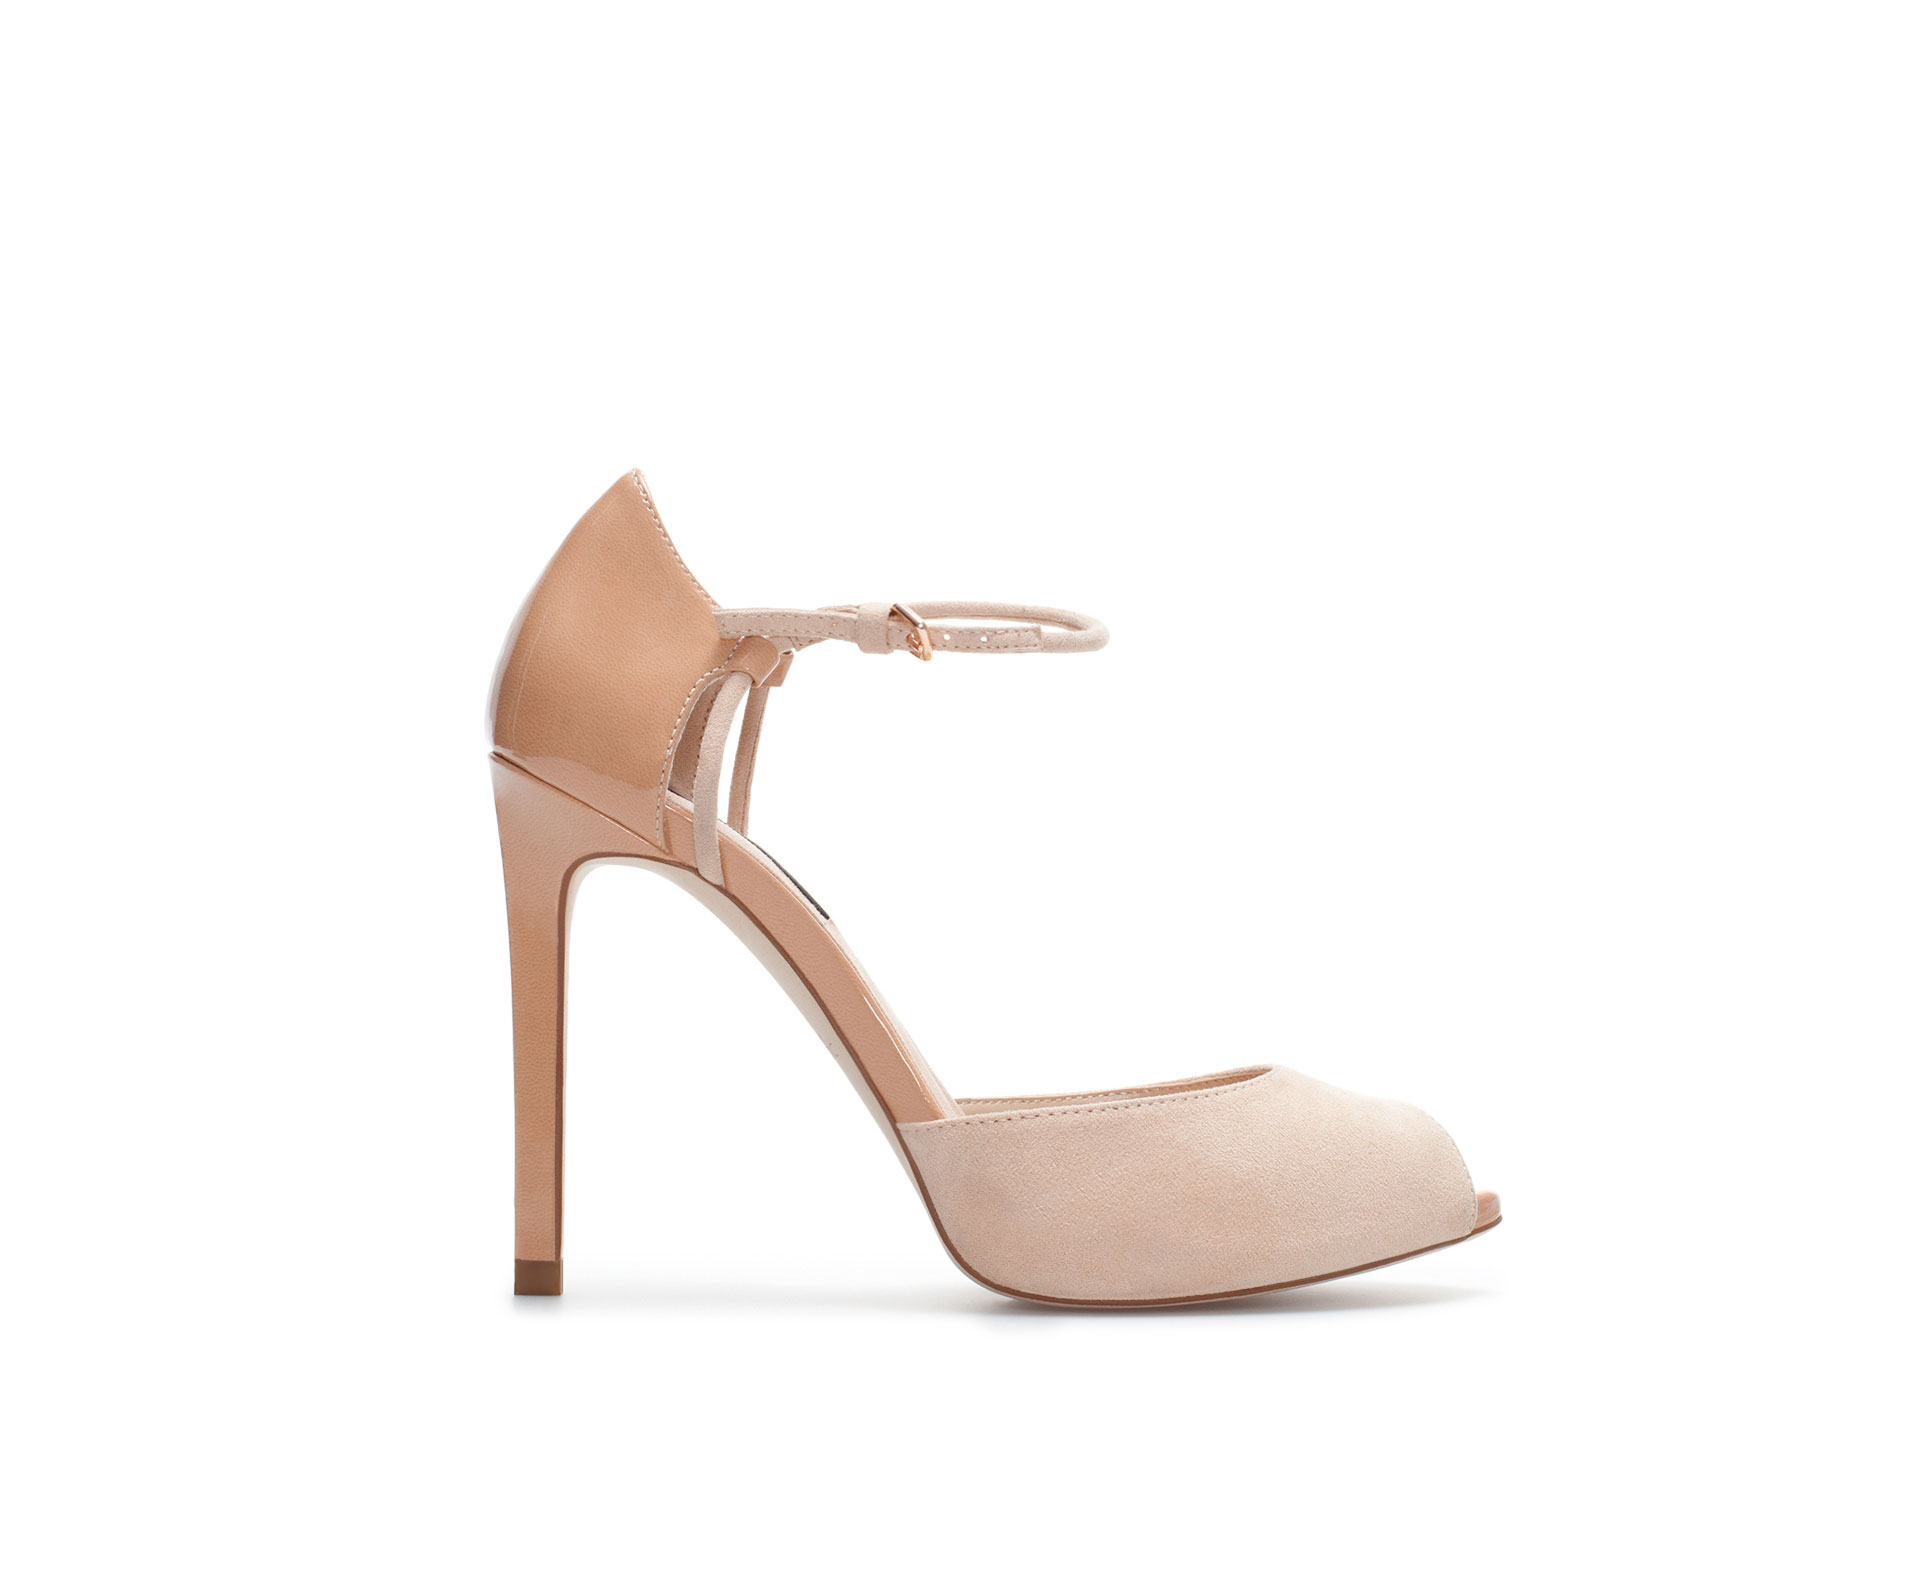 Zara High Heel Sandals with Ankle Strap and Platform in Natural | Lyst